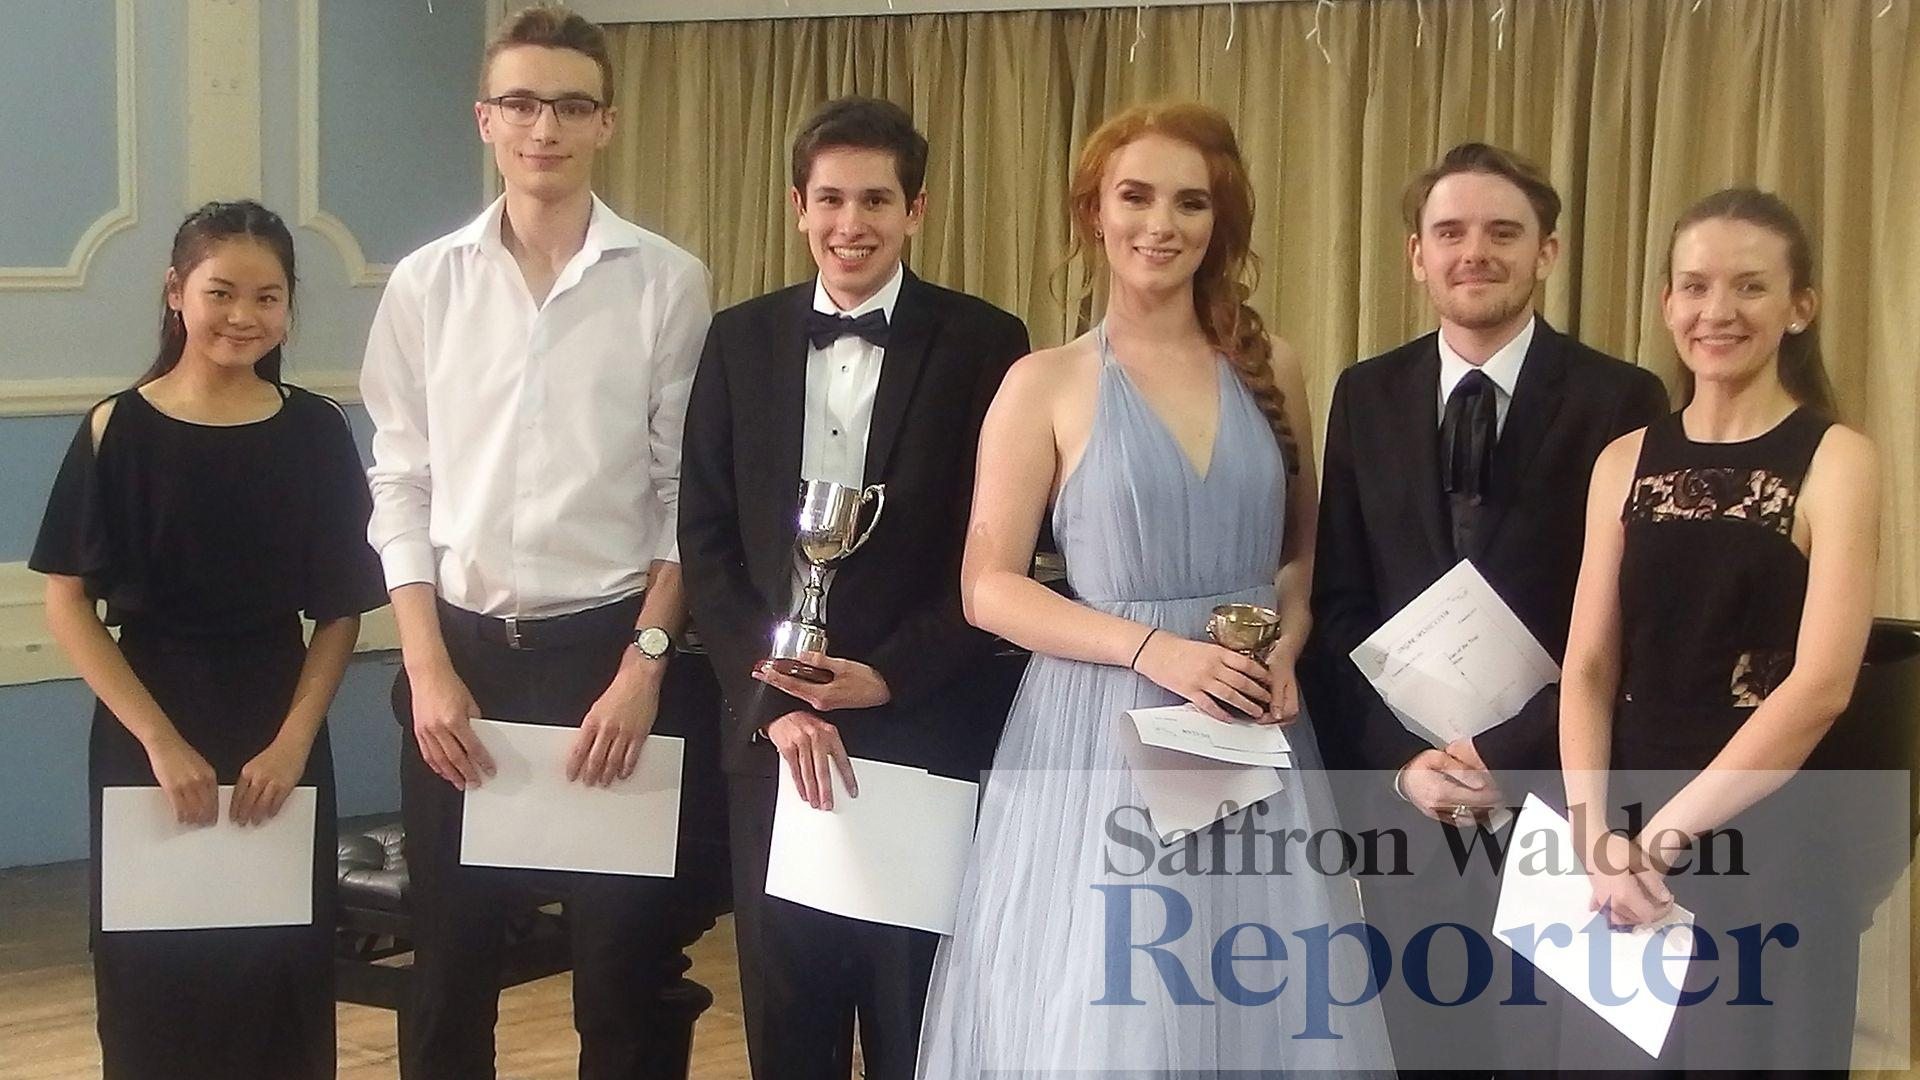 Essex young musician contest is open